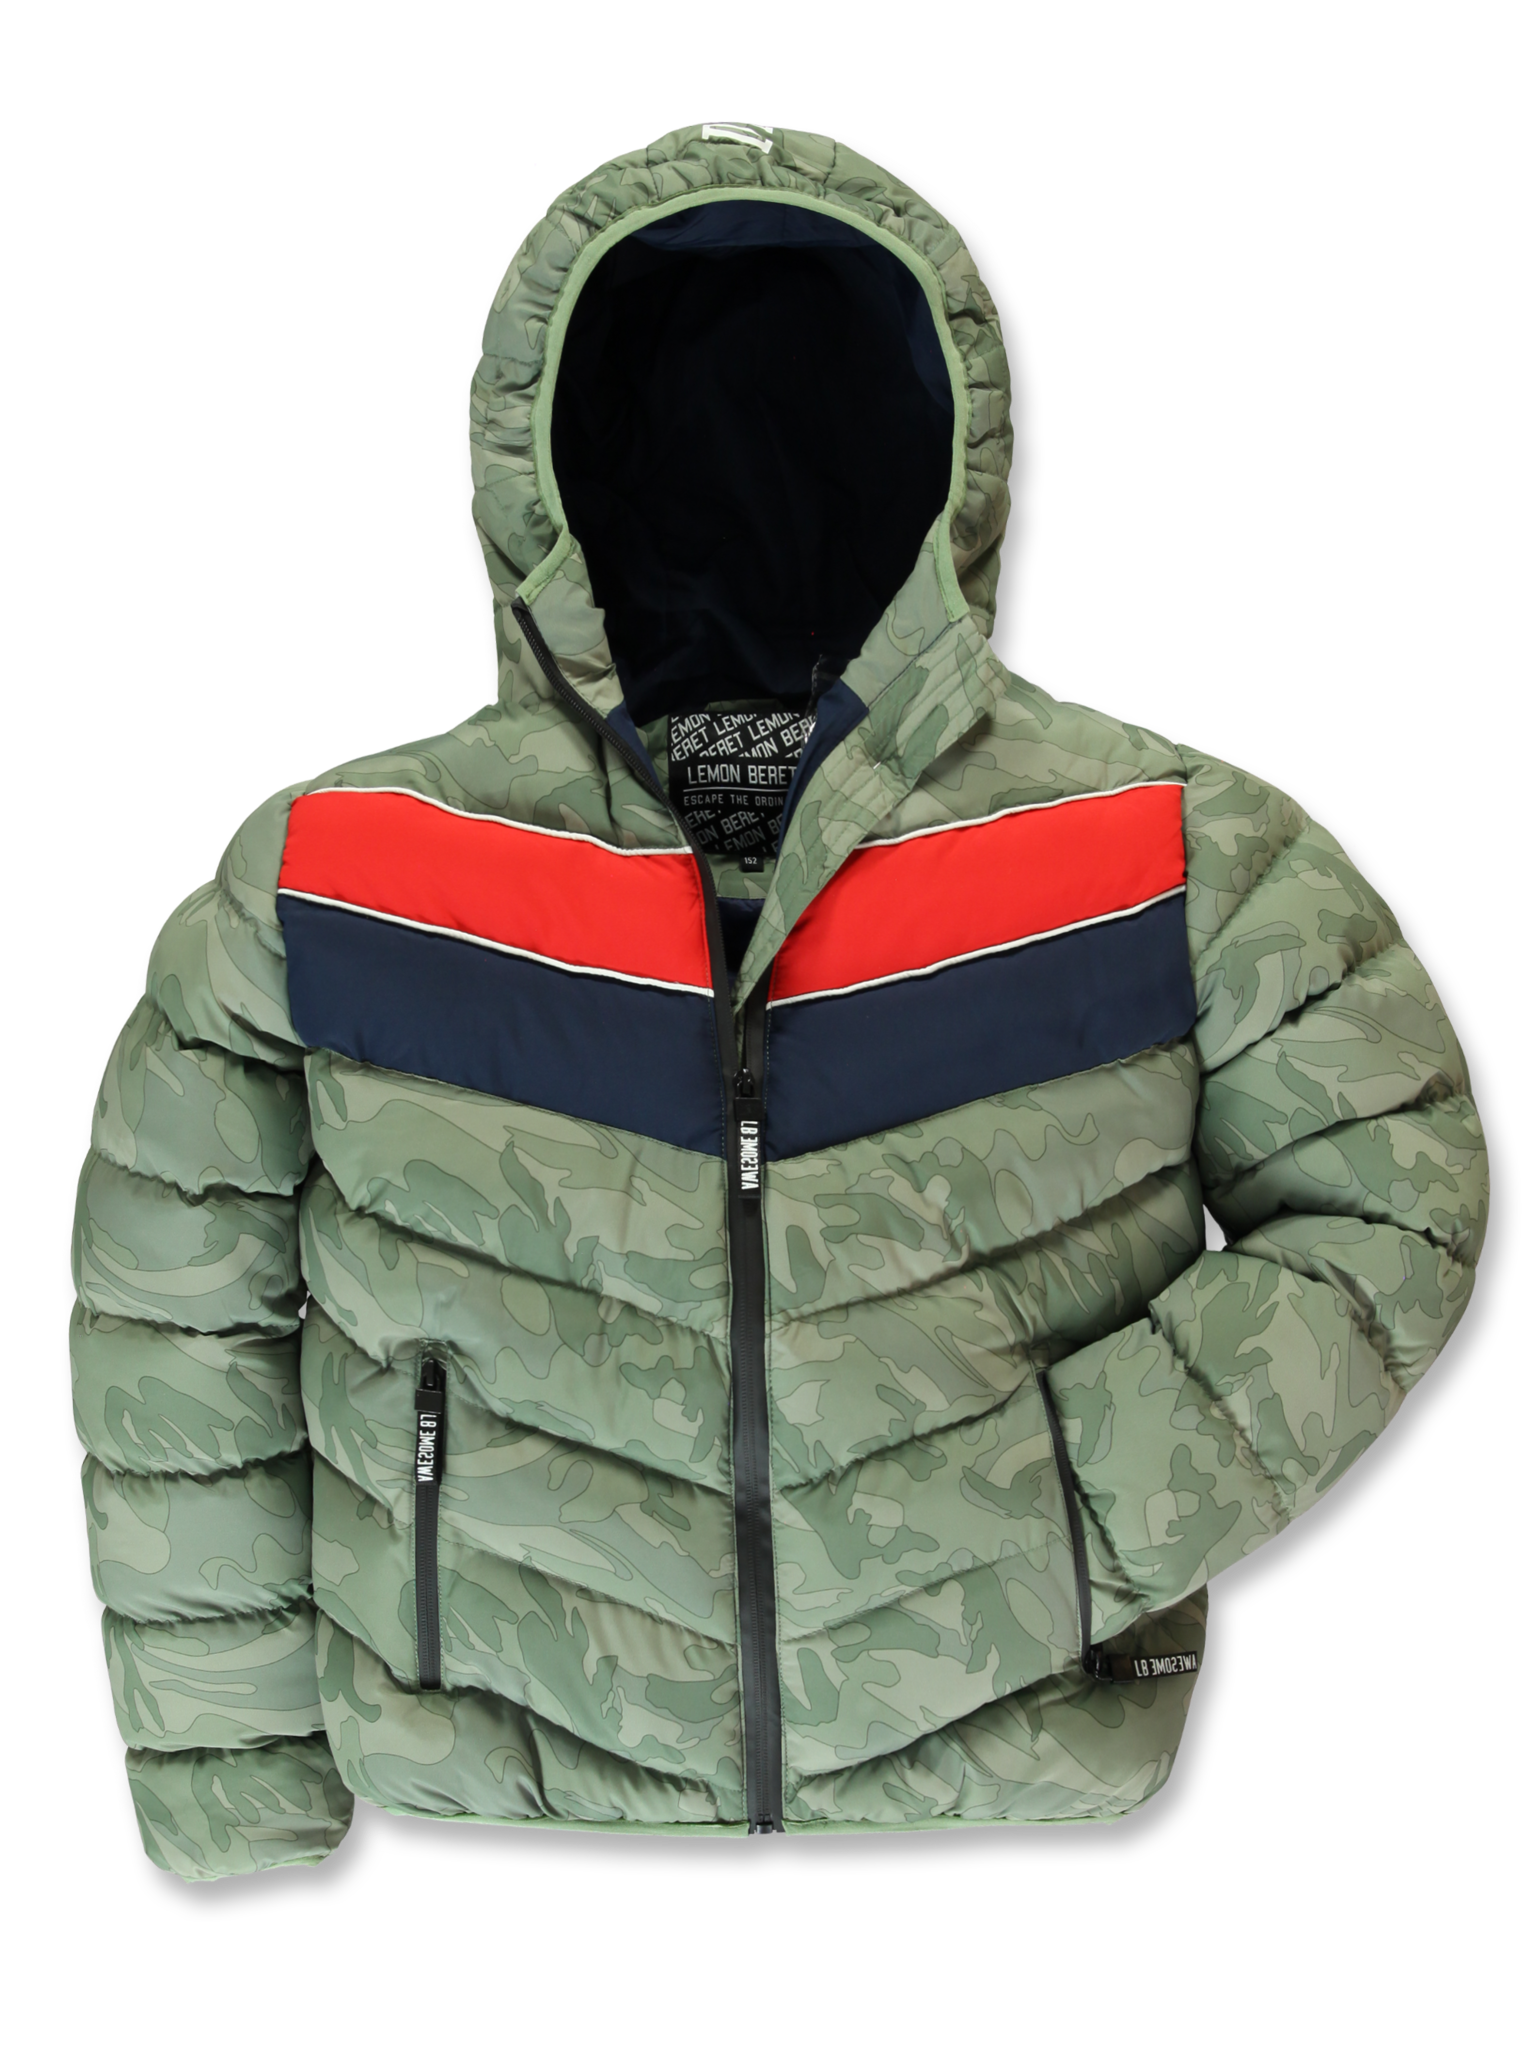 All Brands | Winterproducts Teen Boys | Jacket | 10 pcs/box